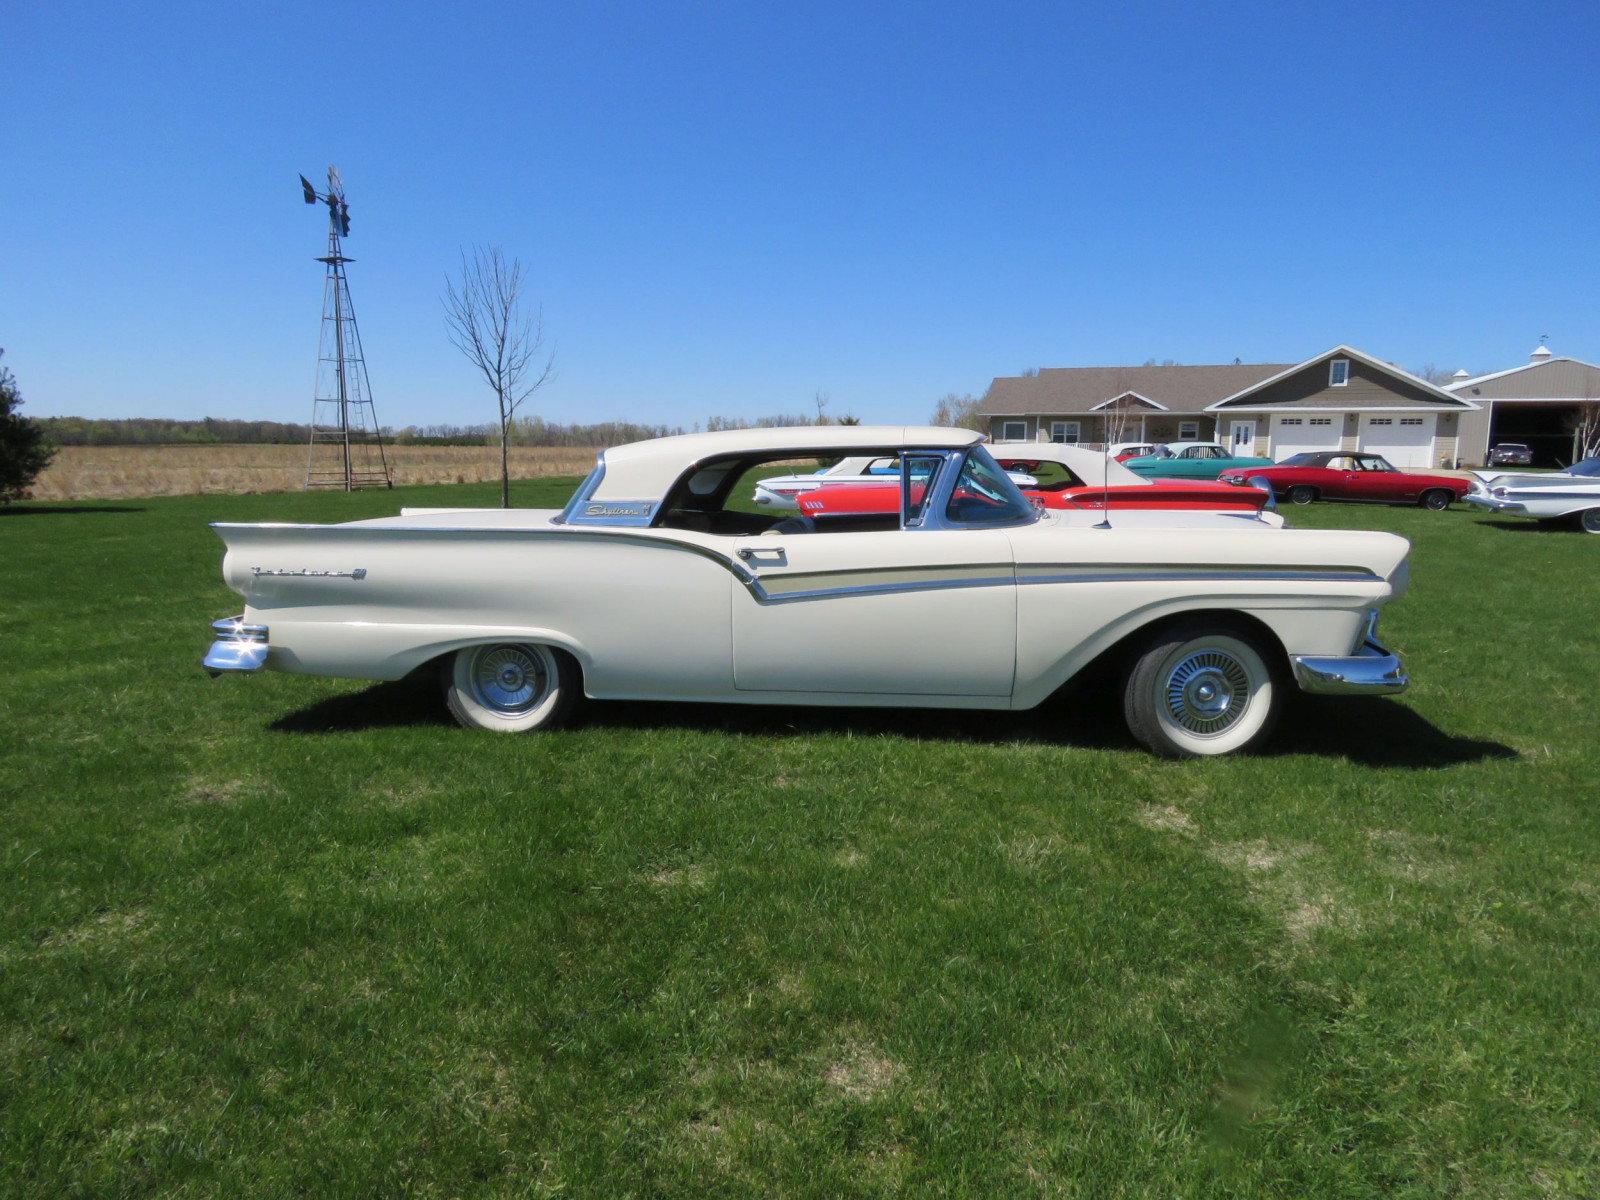 1957 Ford Fairlane 500 Skyliner Retractable Hardtop - Image 4